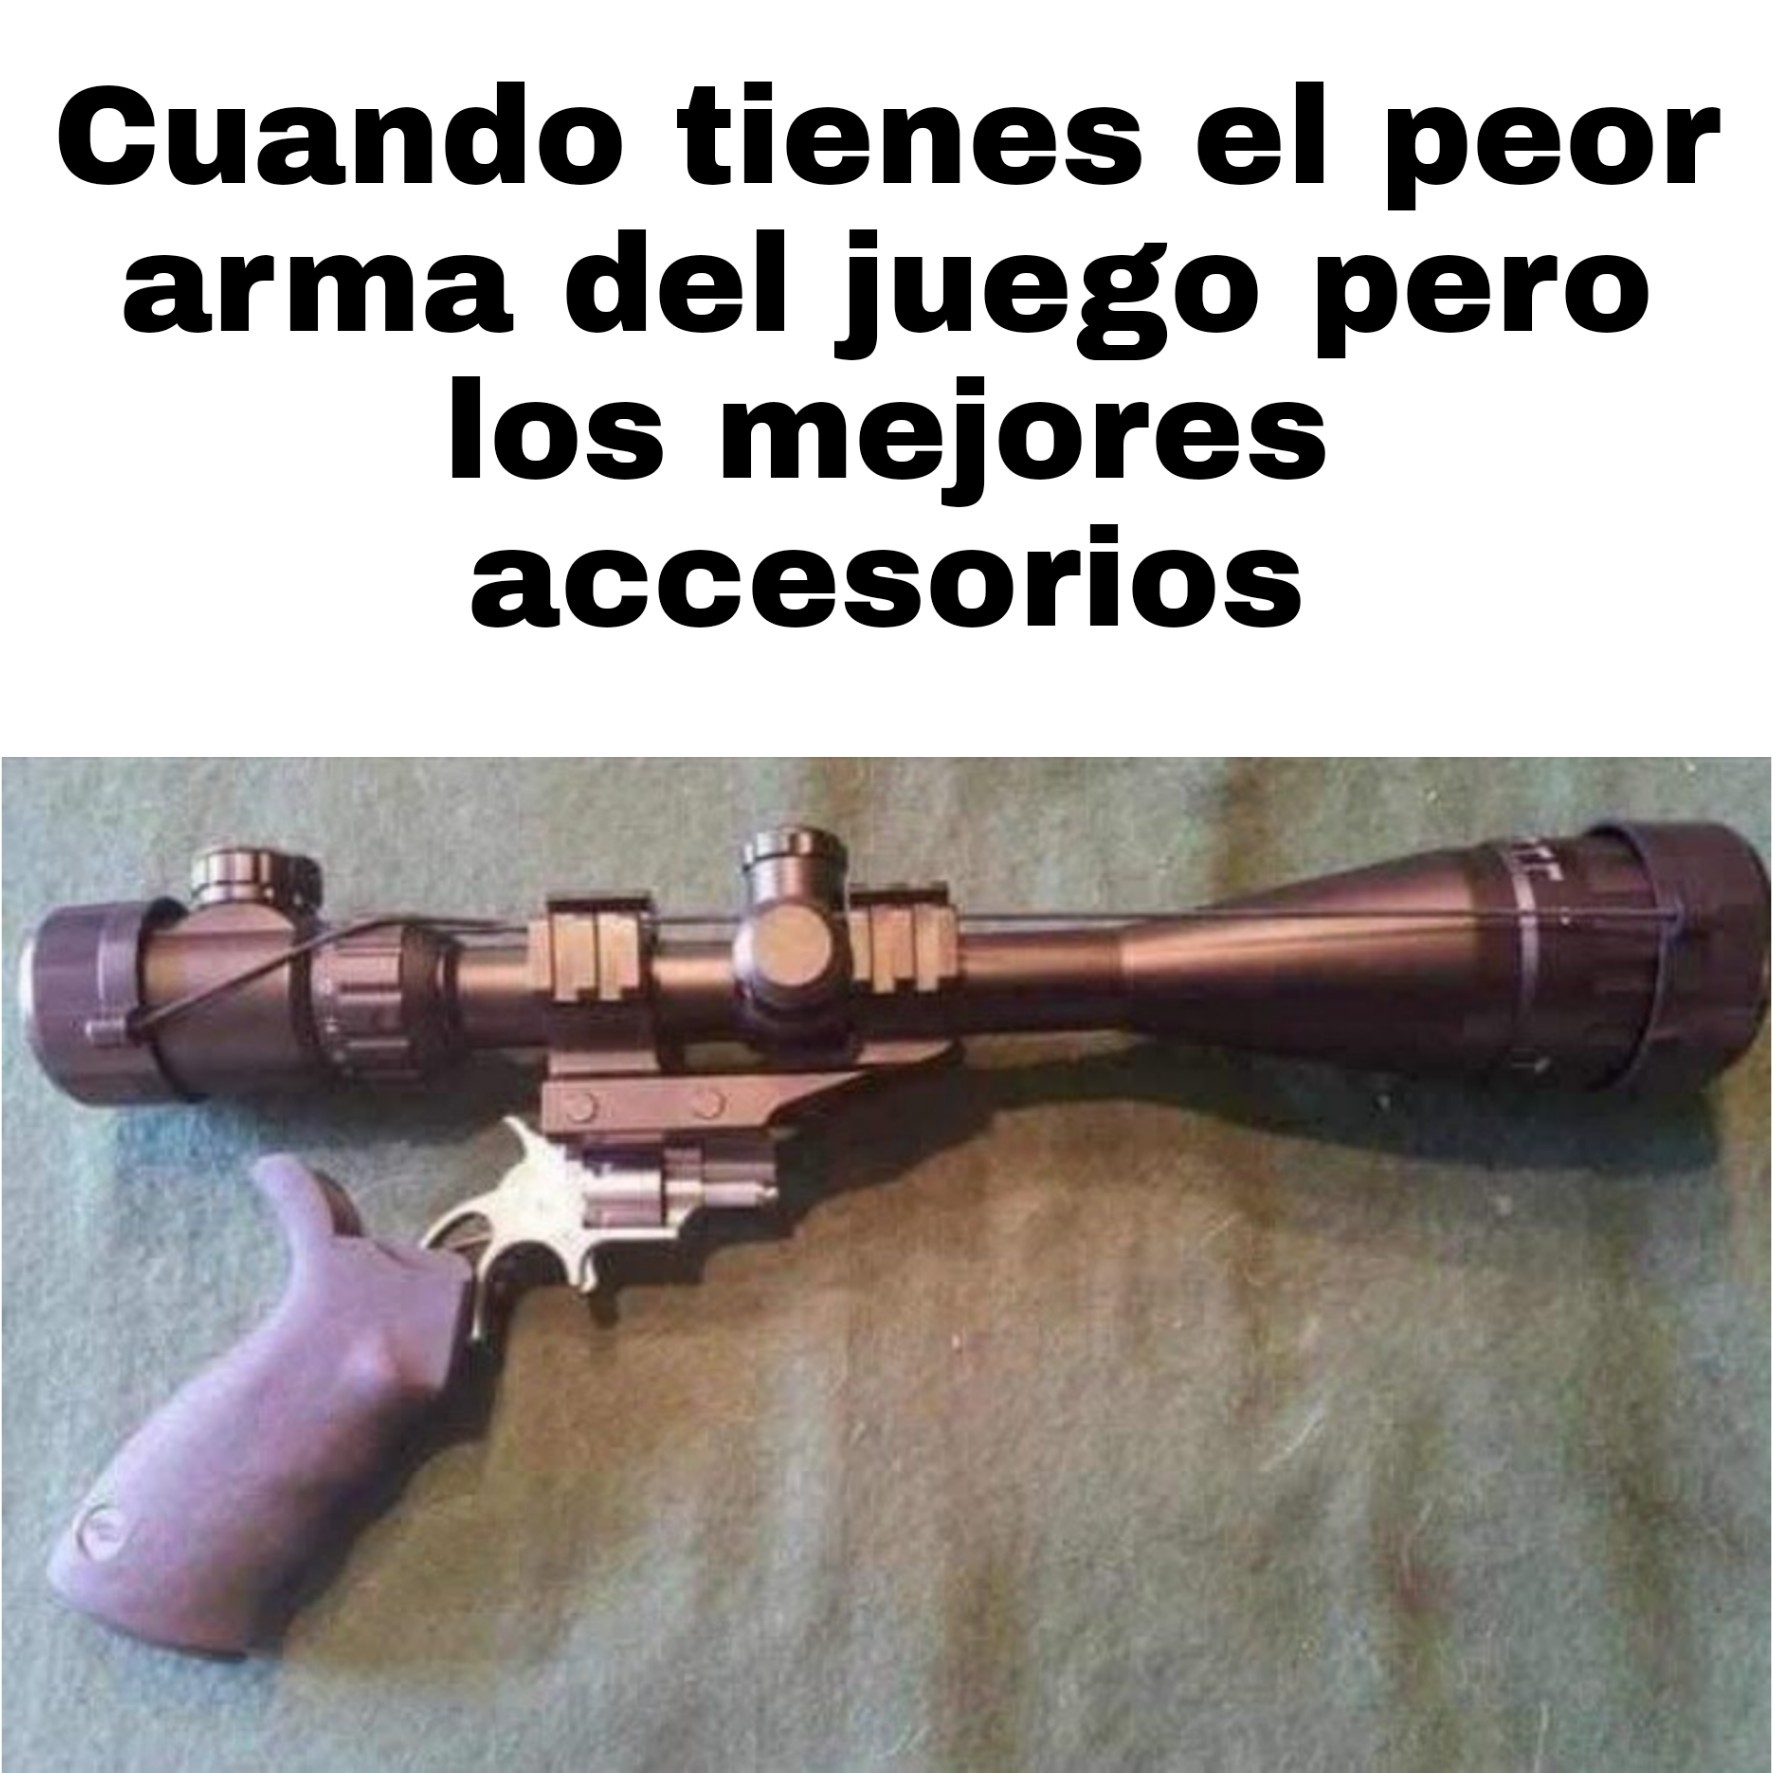 I am little weapons guy, and this is my weapon - meme